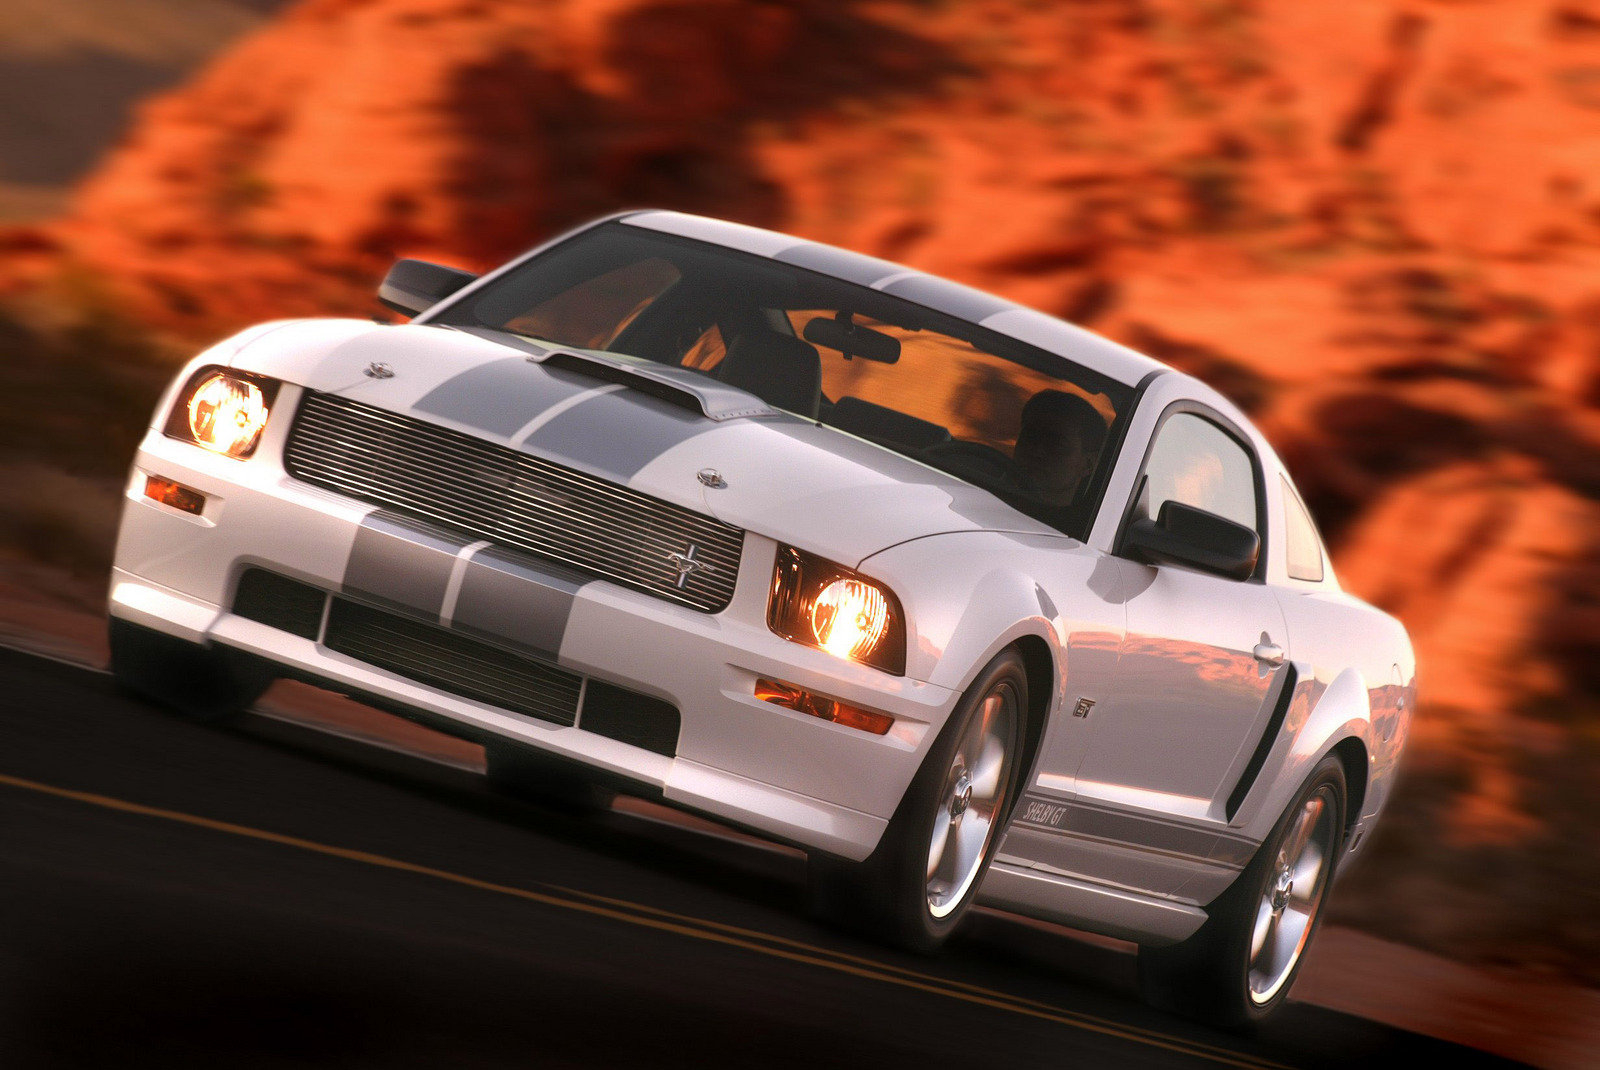 2007 Mustang Gt 0 60 - 2019-2020 New Upcoming Cars by